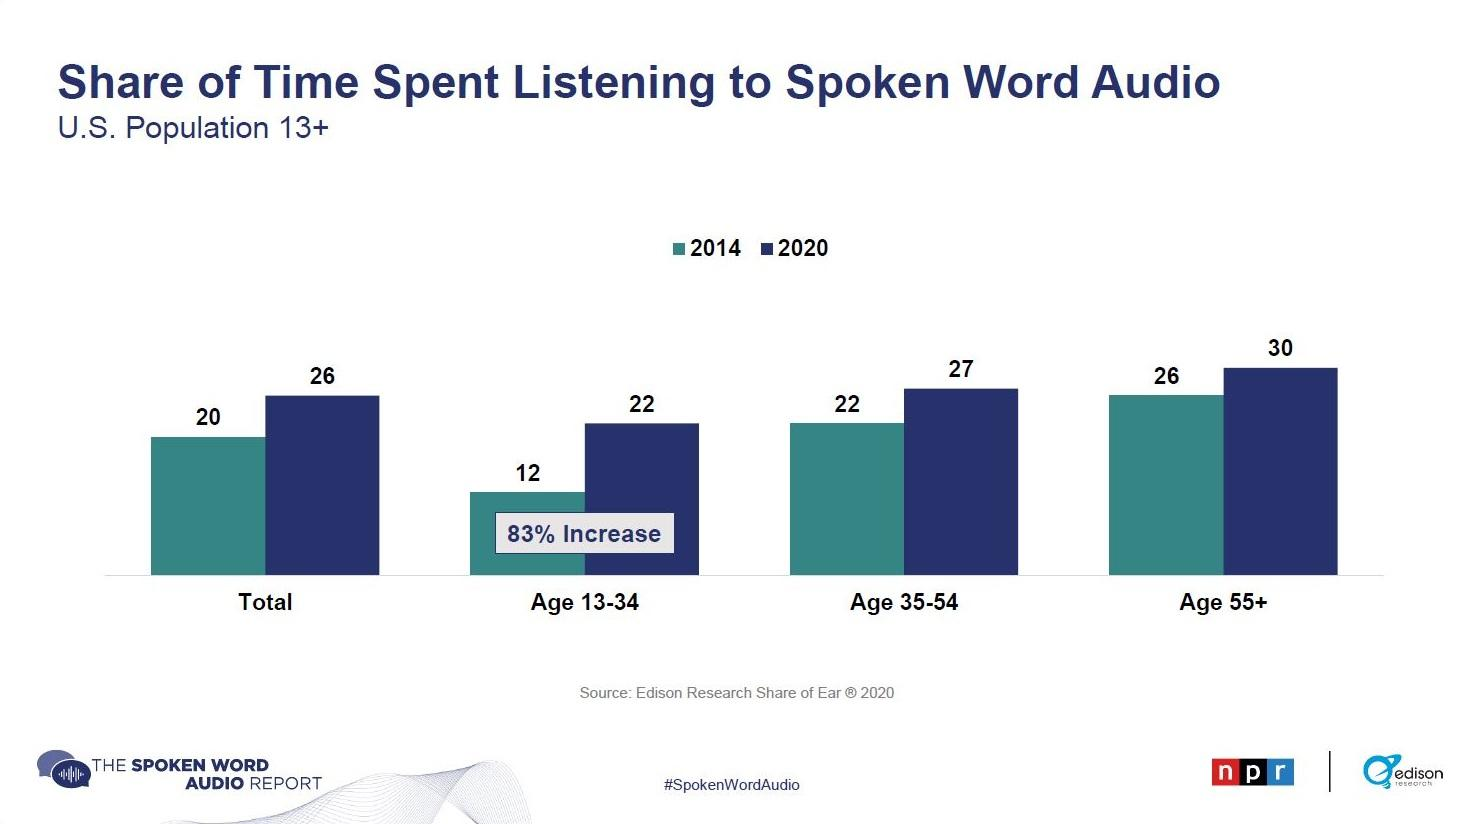 Share of Time Spent Listening to Spoken Word Audio report